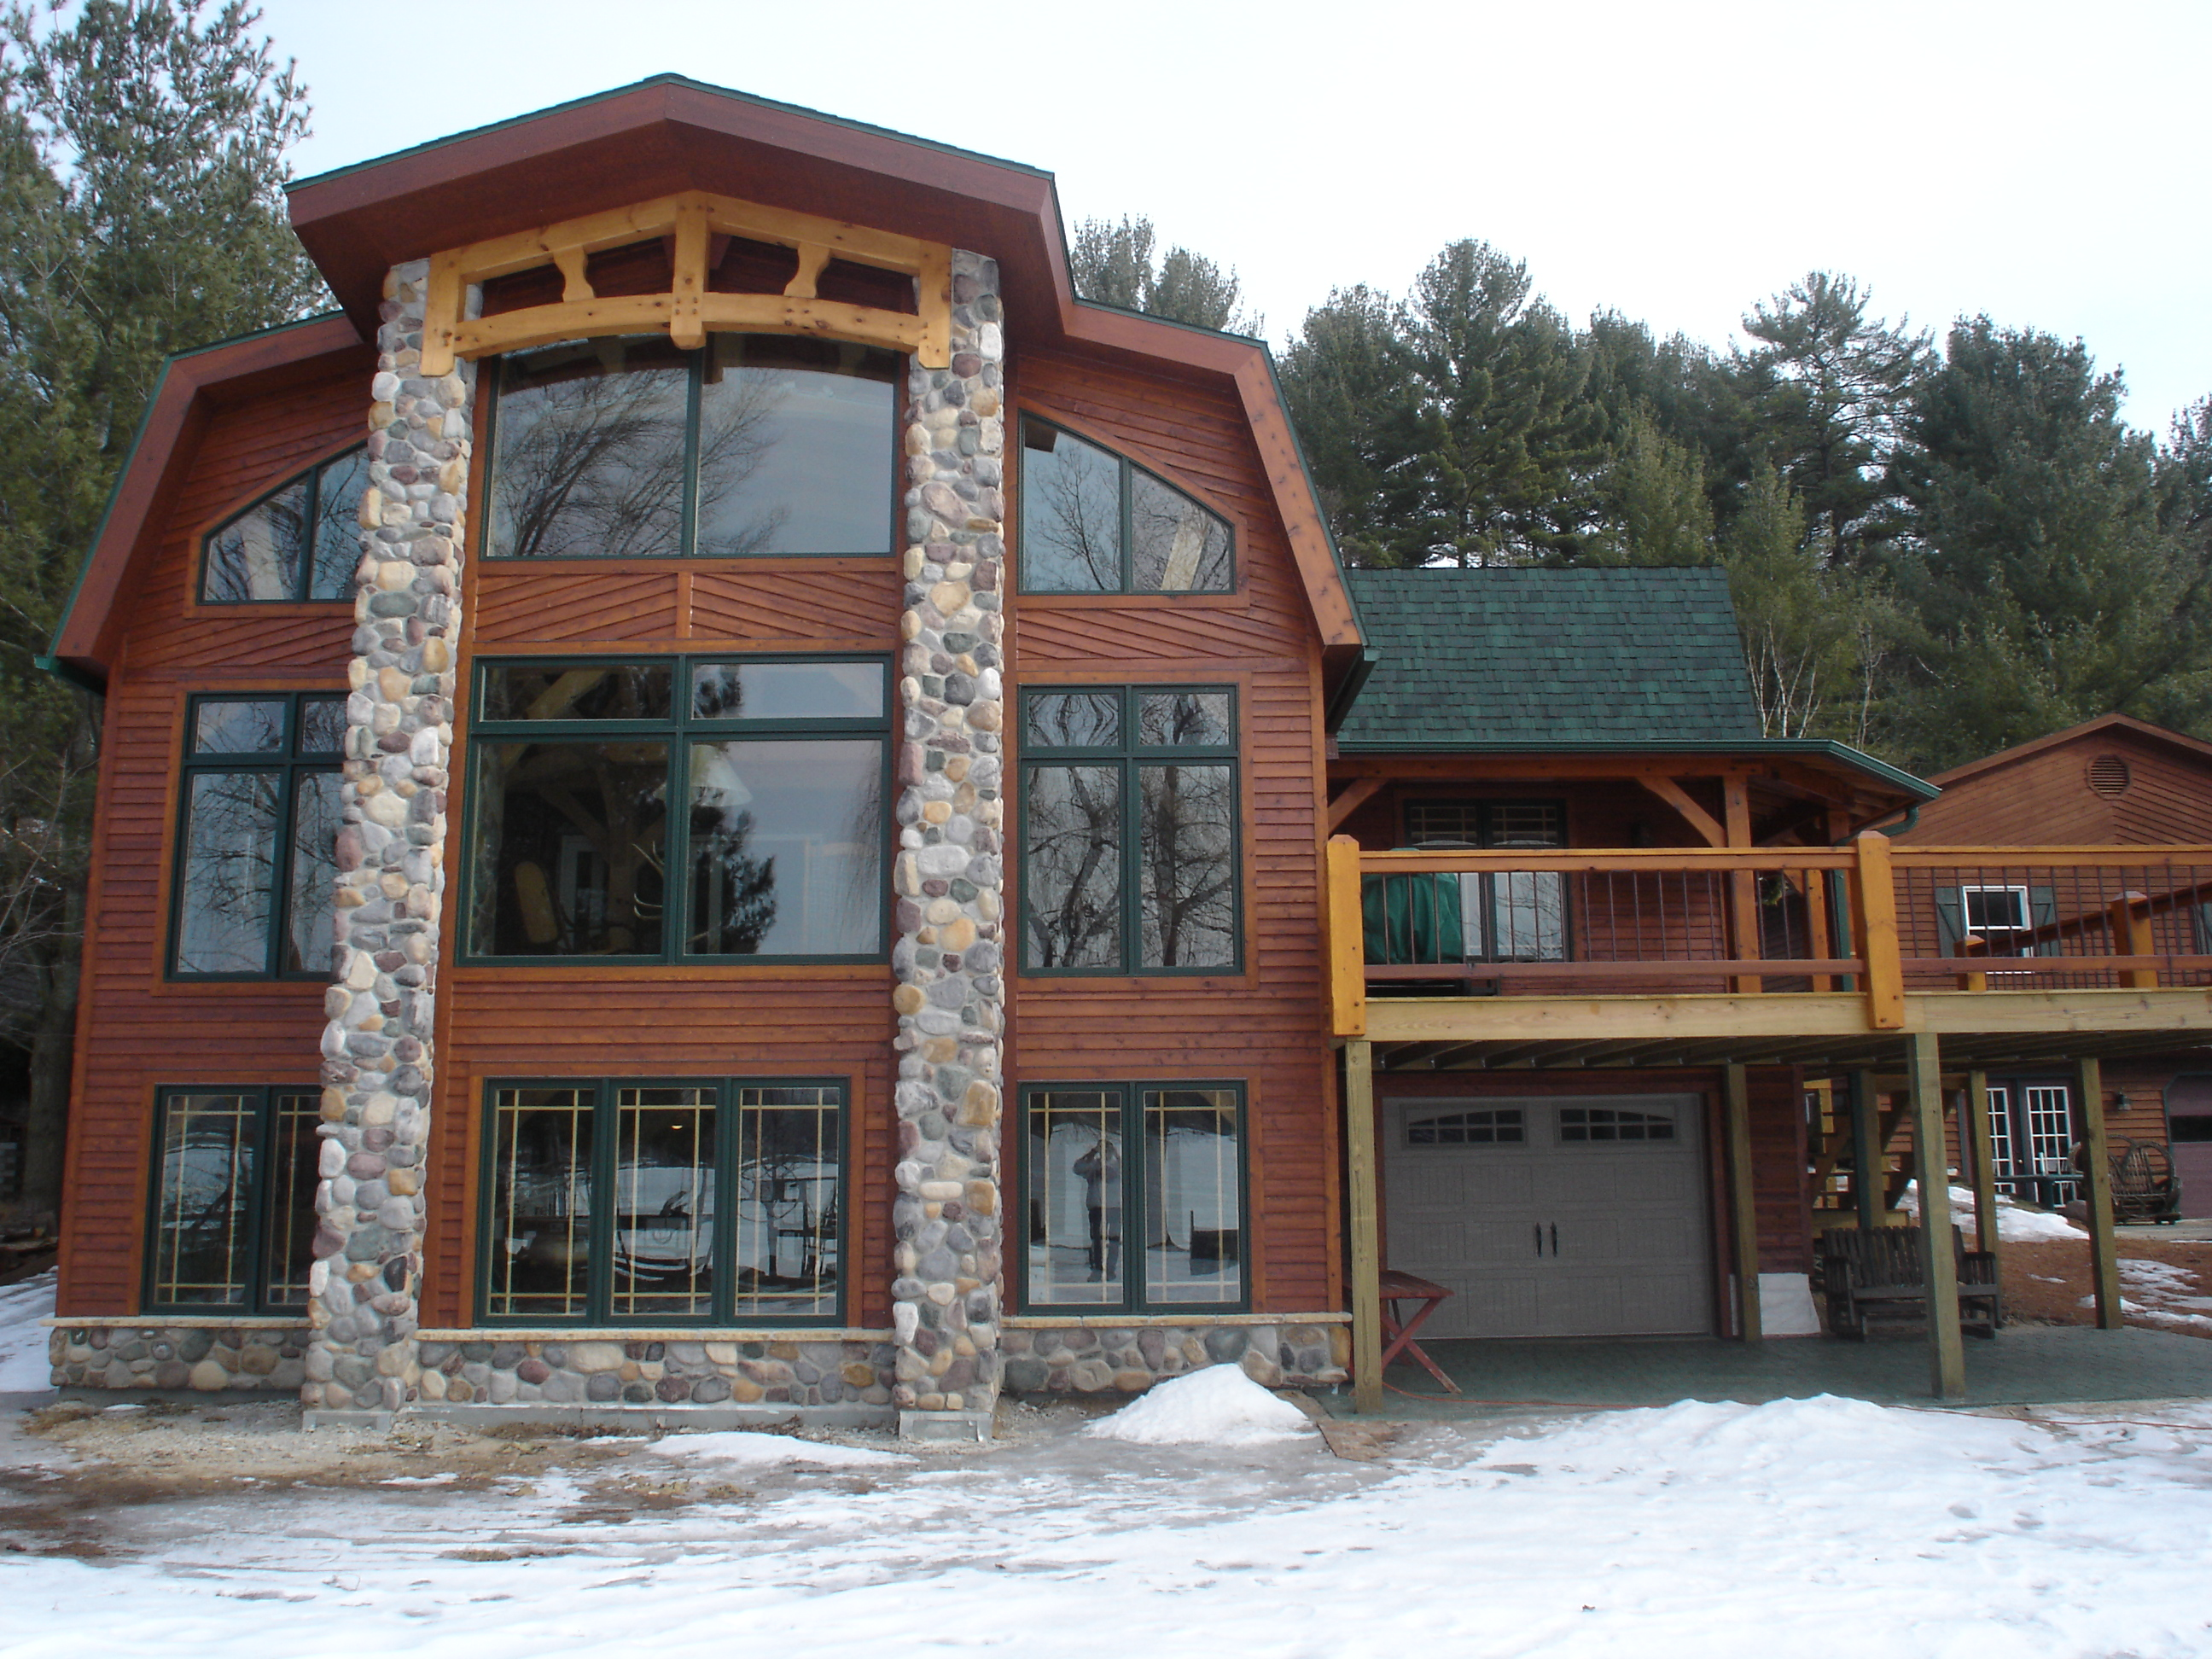 North woods timber frames builder of handcrafted timber for Beautiful a frame homes